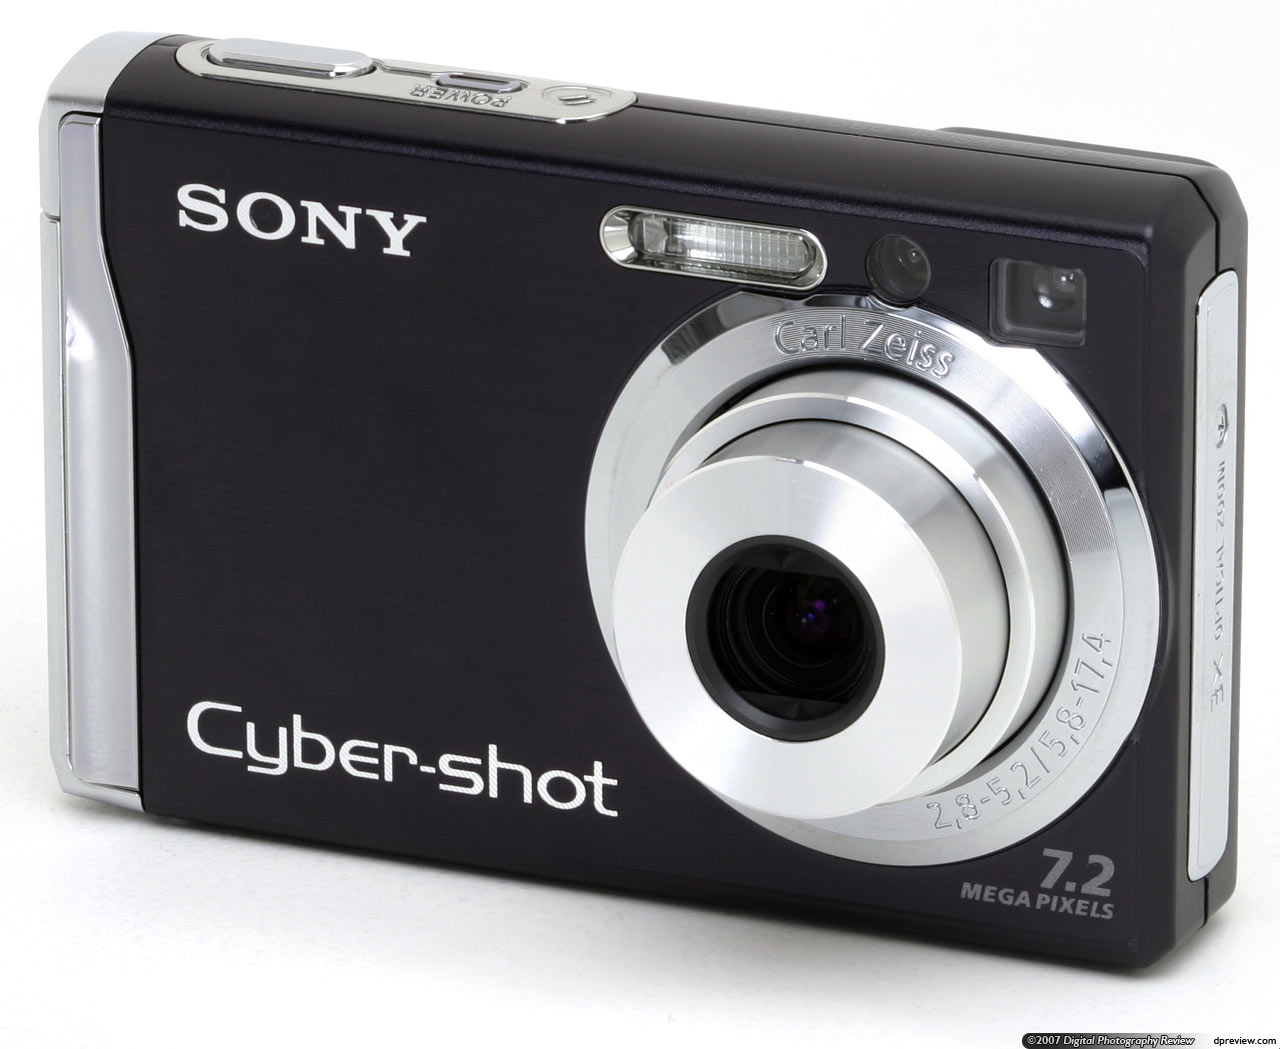 sony cyber shot w80 review digital photography review rh dpreview com Sony Dsc-W80 Cable Memory Card Sony DSC W80